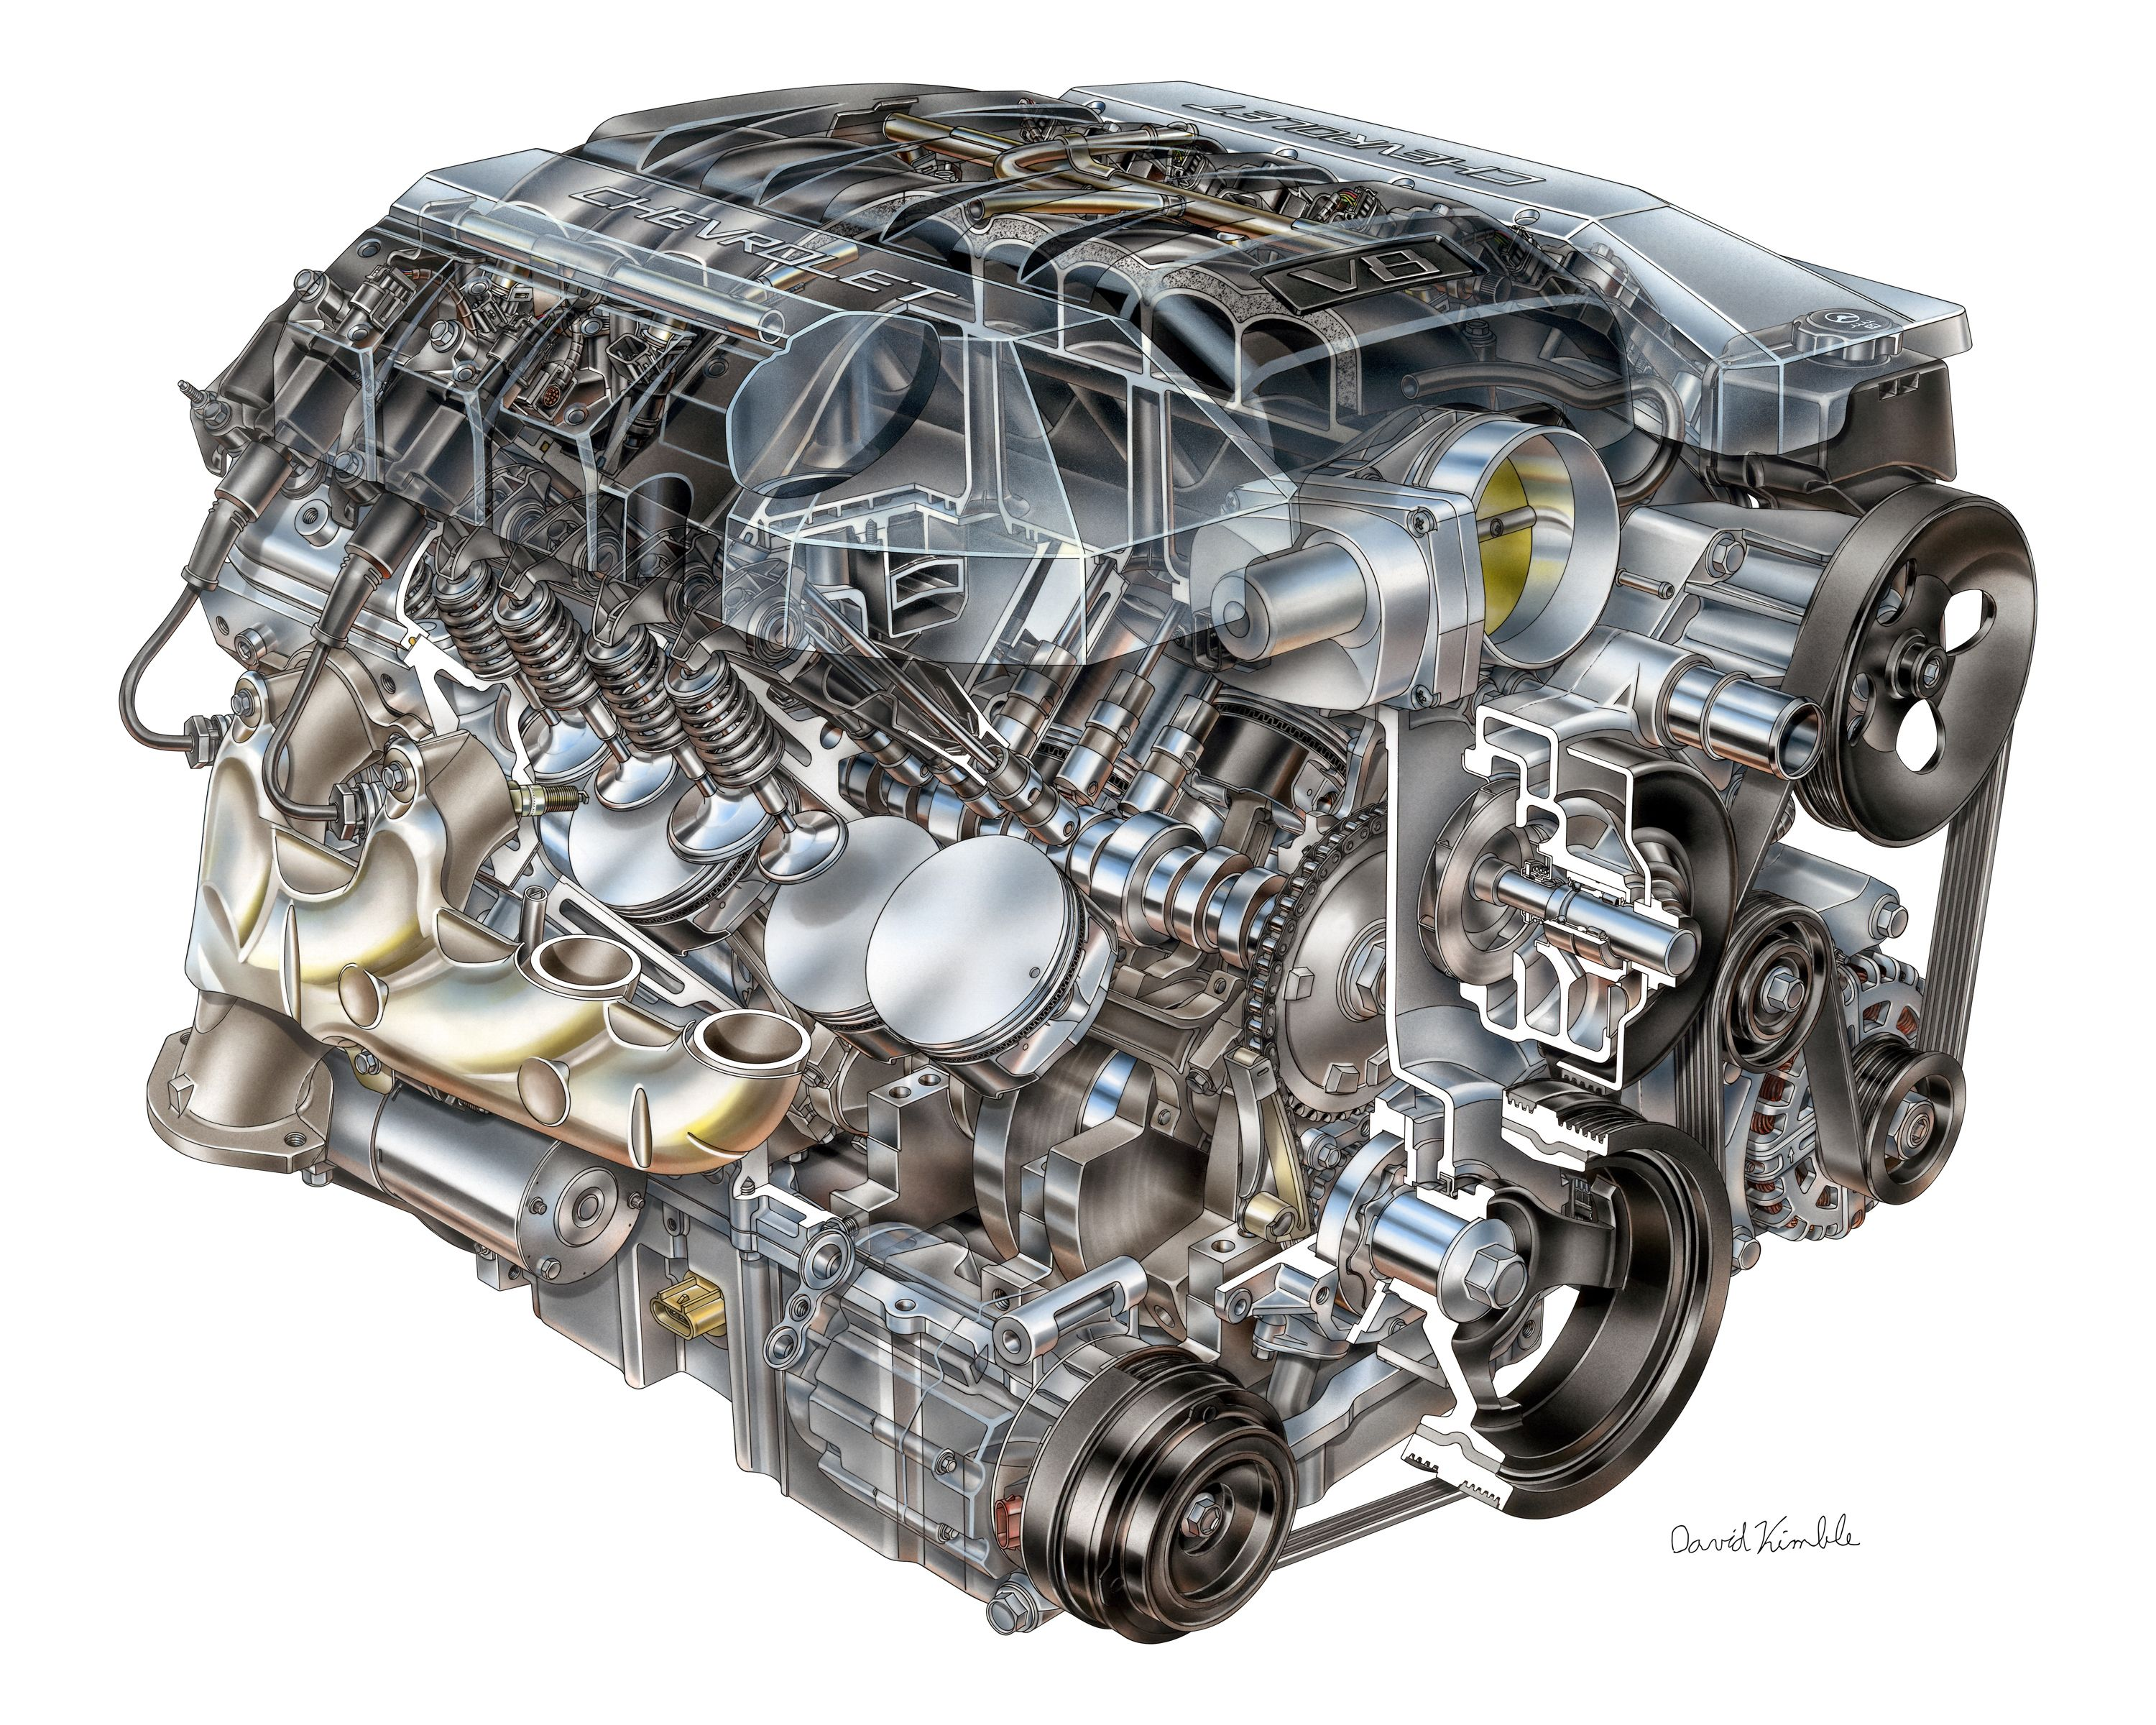 hight resolution of what chevy gains by using a pushrod engine in the corvette corvette v8 engine diagram